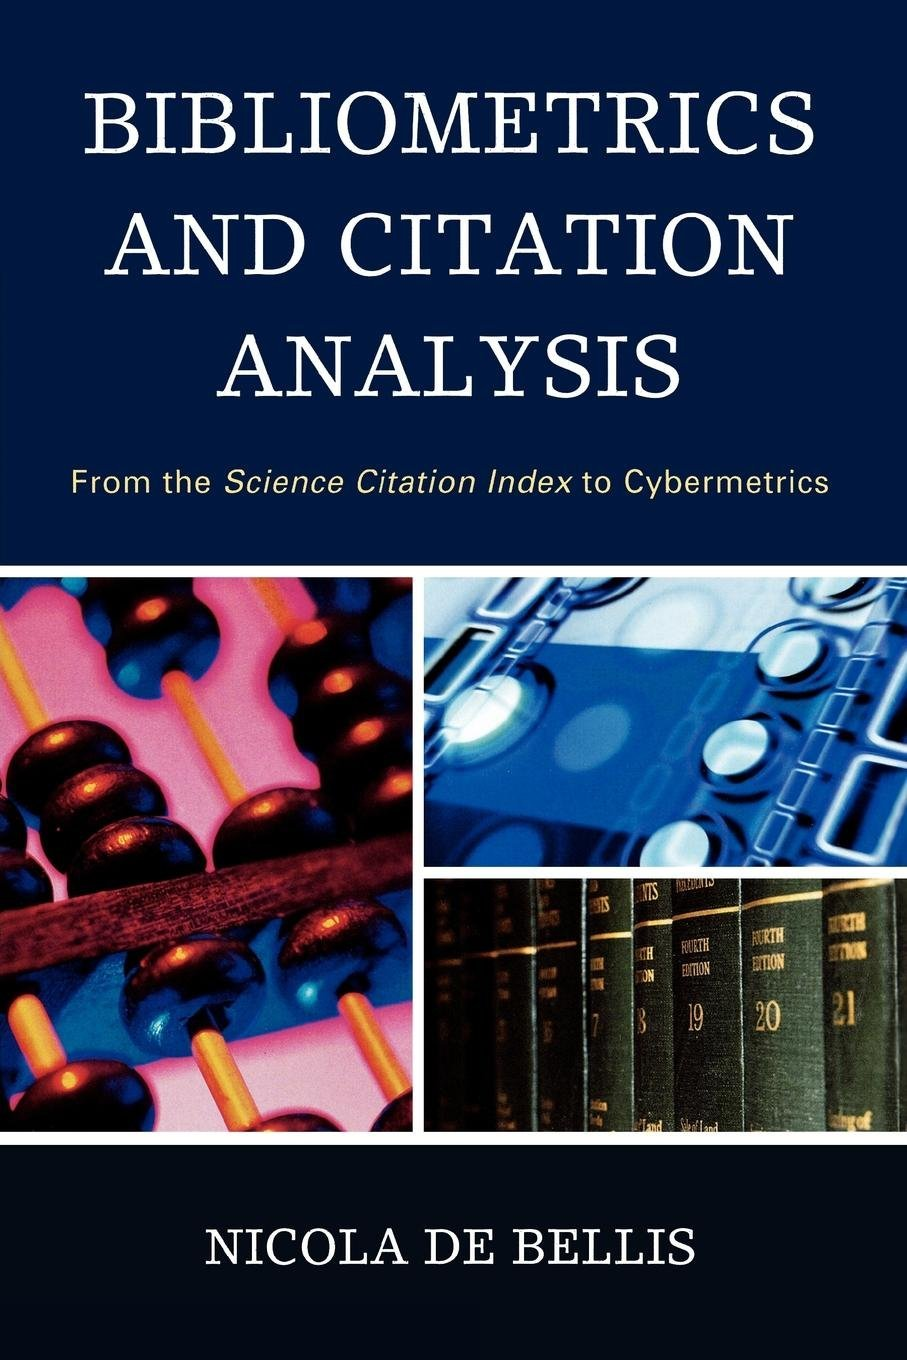 Bibliometrics and Citation Analysis: From the Science Citation Index to Cybermetrics